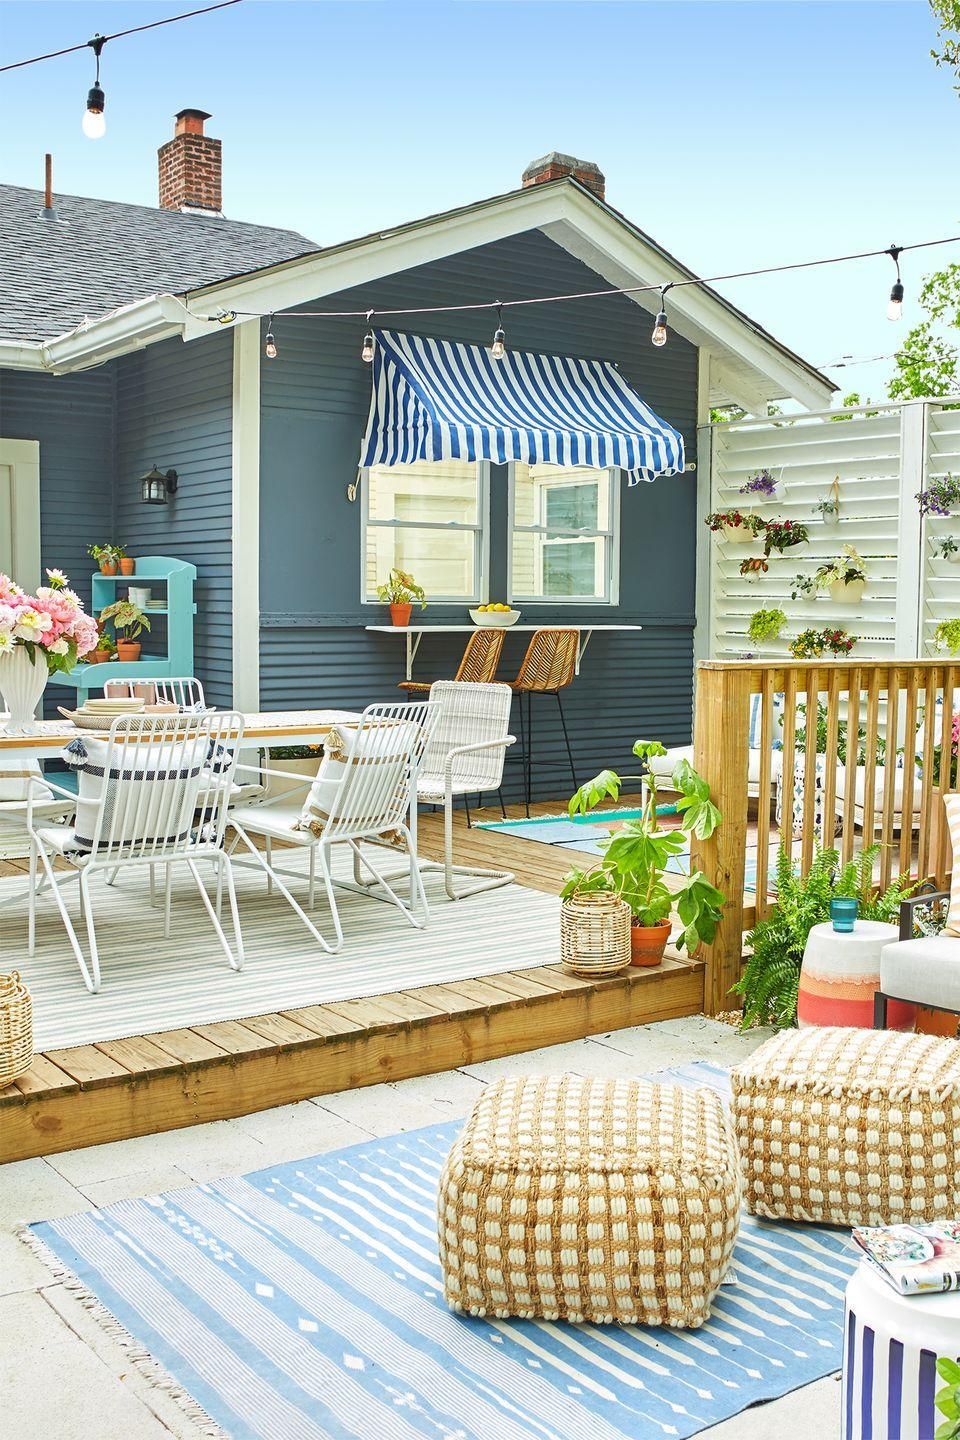 <p>If your deck is low to the ground, extend its reach by laying stone patio tiles along the existing deck. It'll create a seamless flow from one area of your space to the next, which is perfect for summer parties and gatherings. </p>